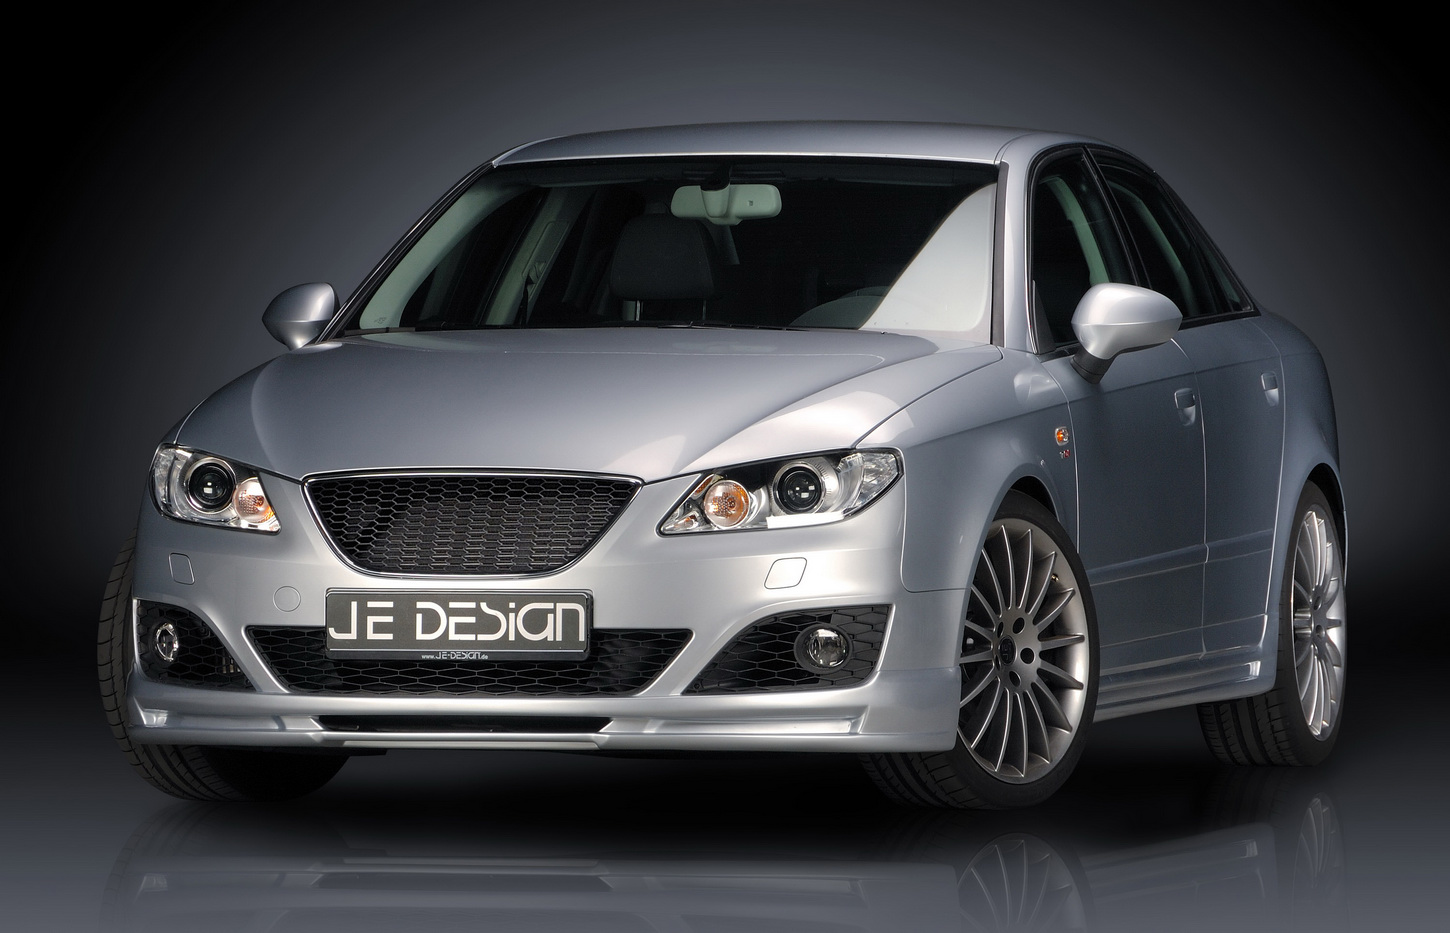 je design debuts aftermarket seat exeo sedan autoevolution. Black Bedroom Furniture Sets. Home Design Ideas